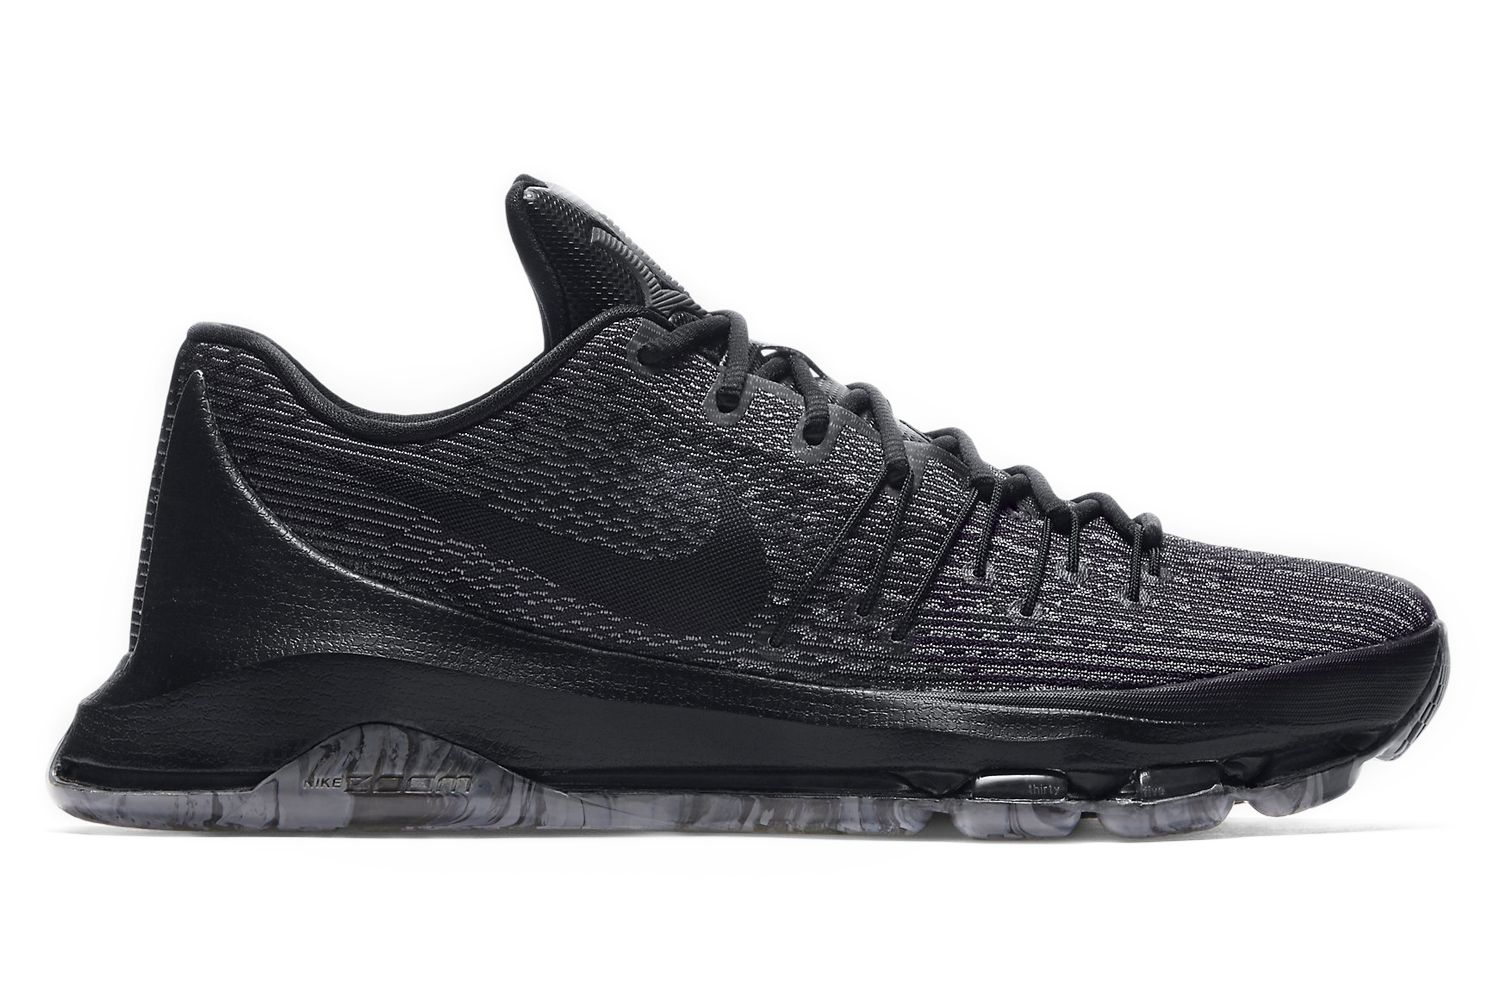 97 Best This goes on your foot images in 2019 | Sneakers